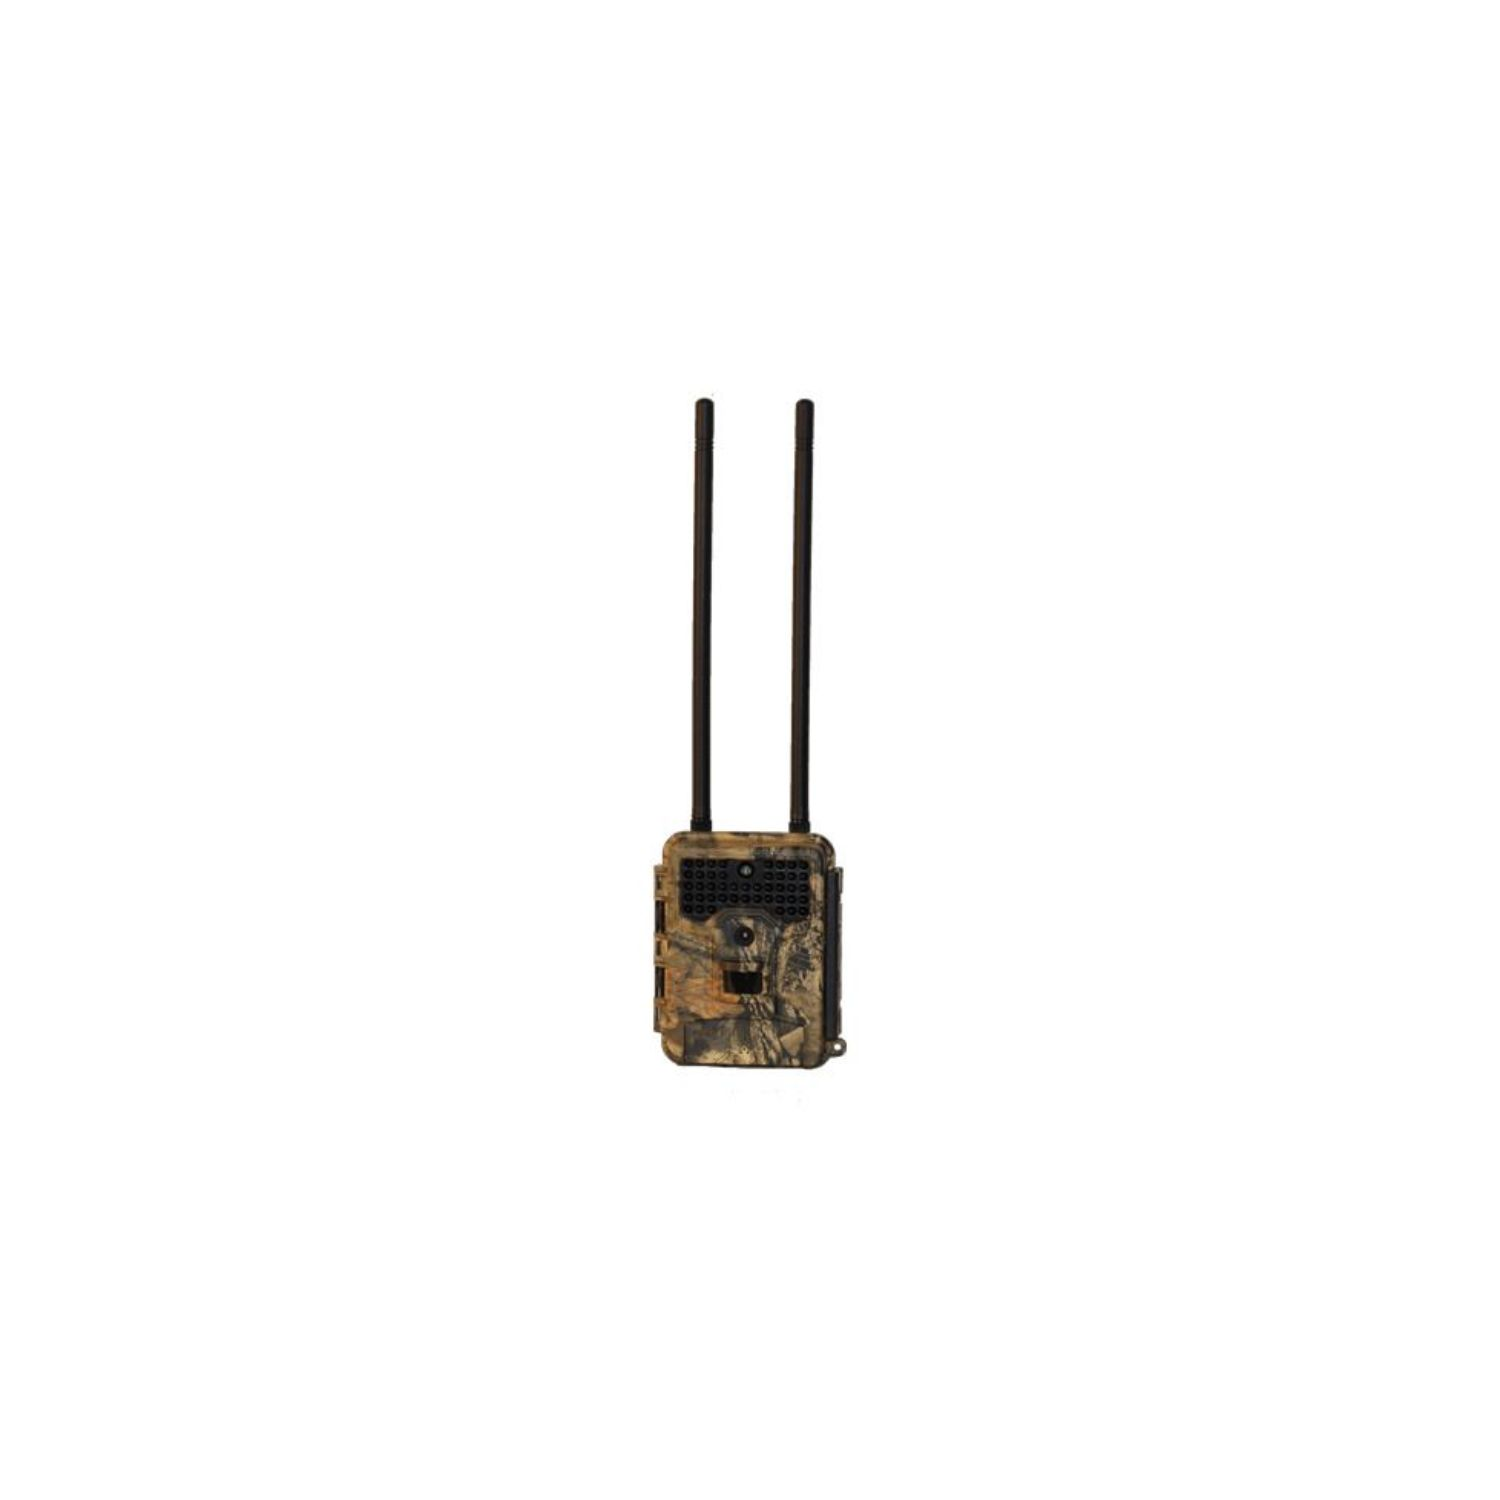 Covert Scouting Cameras E1 AT and T Trail Camera